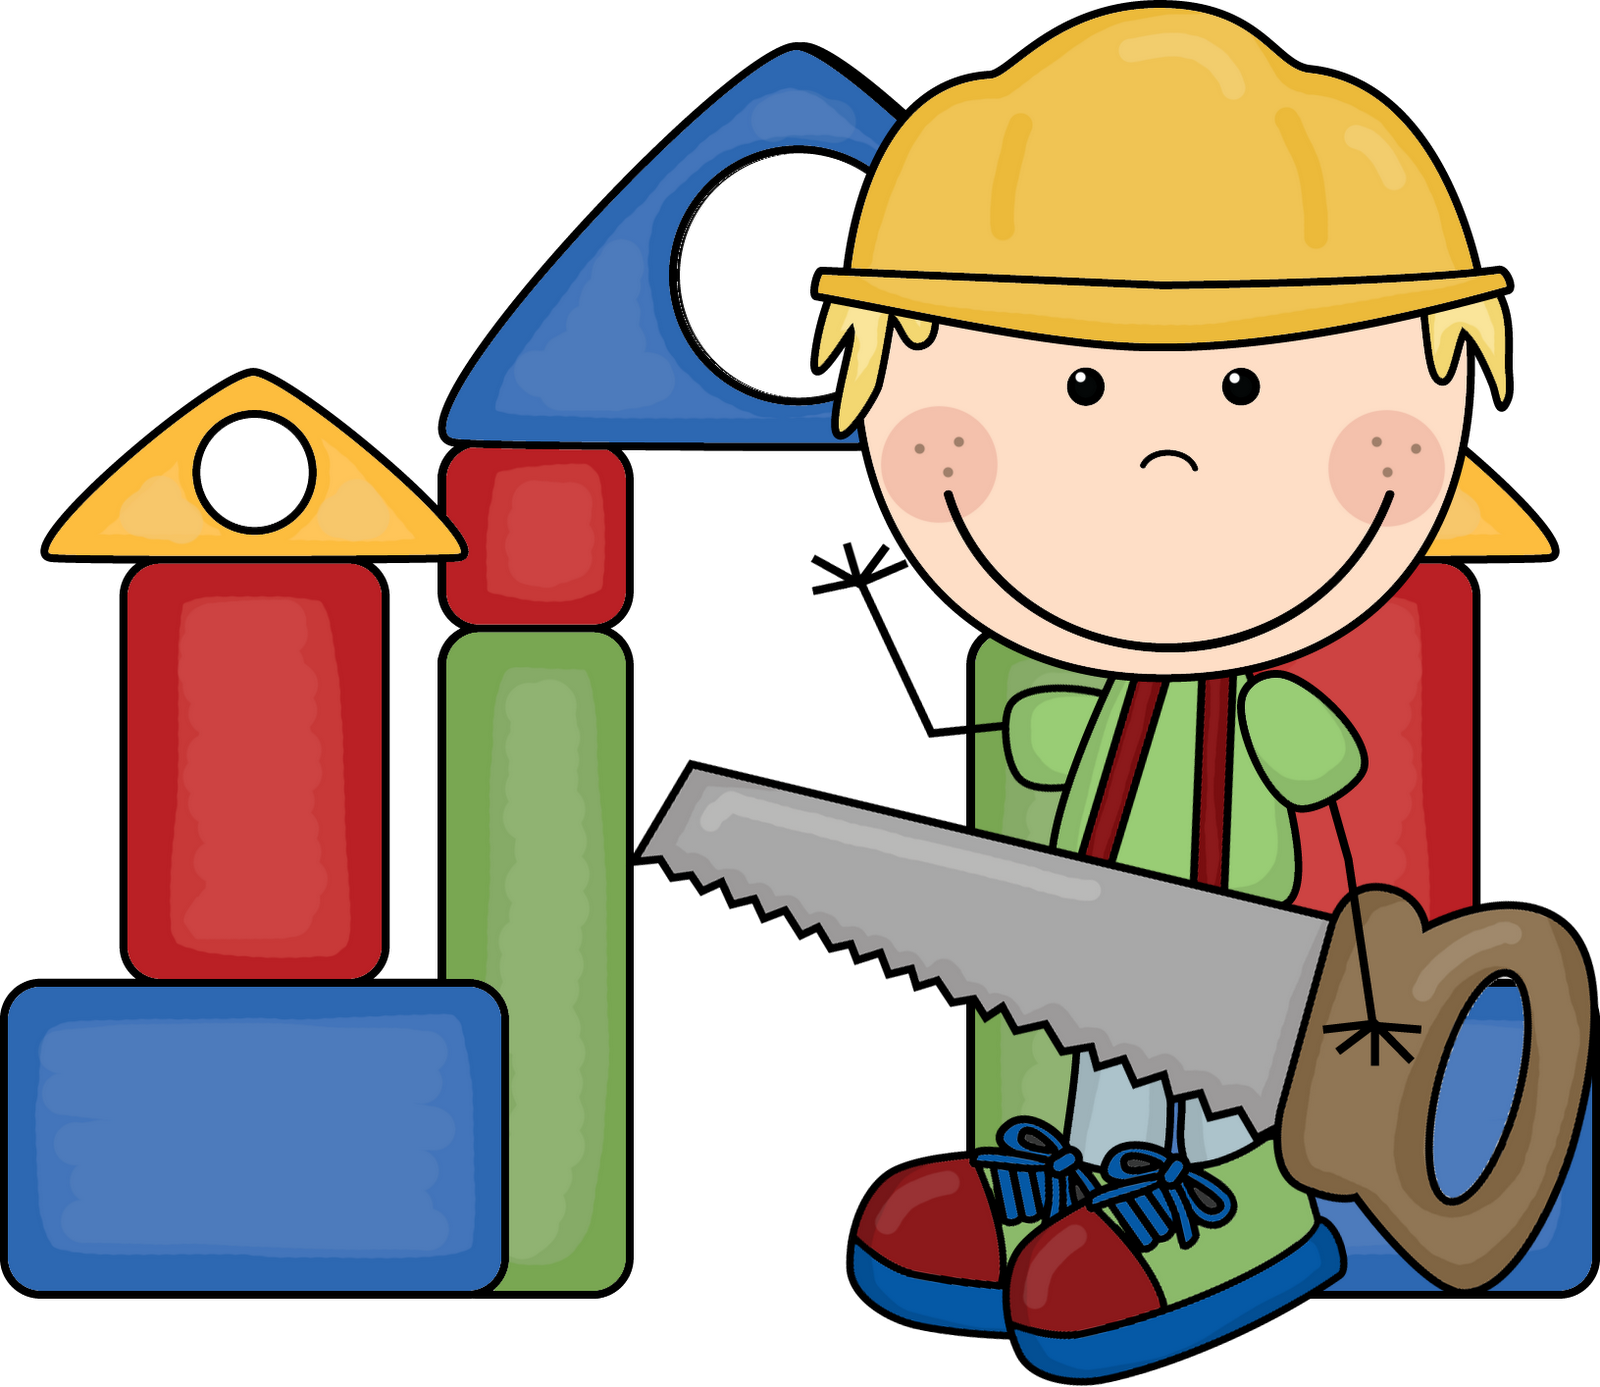 Child building with blocks clipart png black and white library Clipart kids with blocks - ClipartFest png black and white library